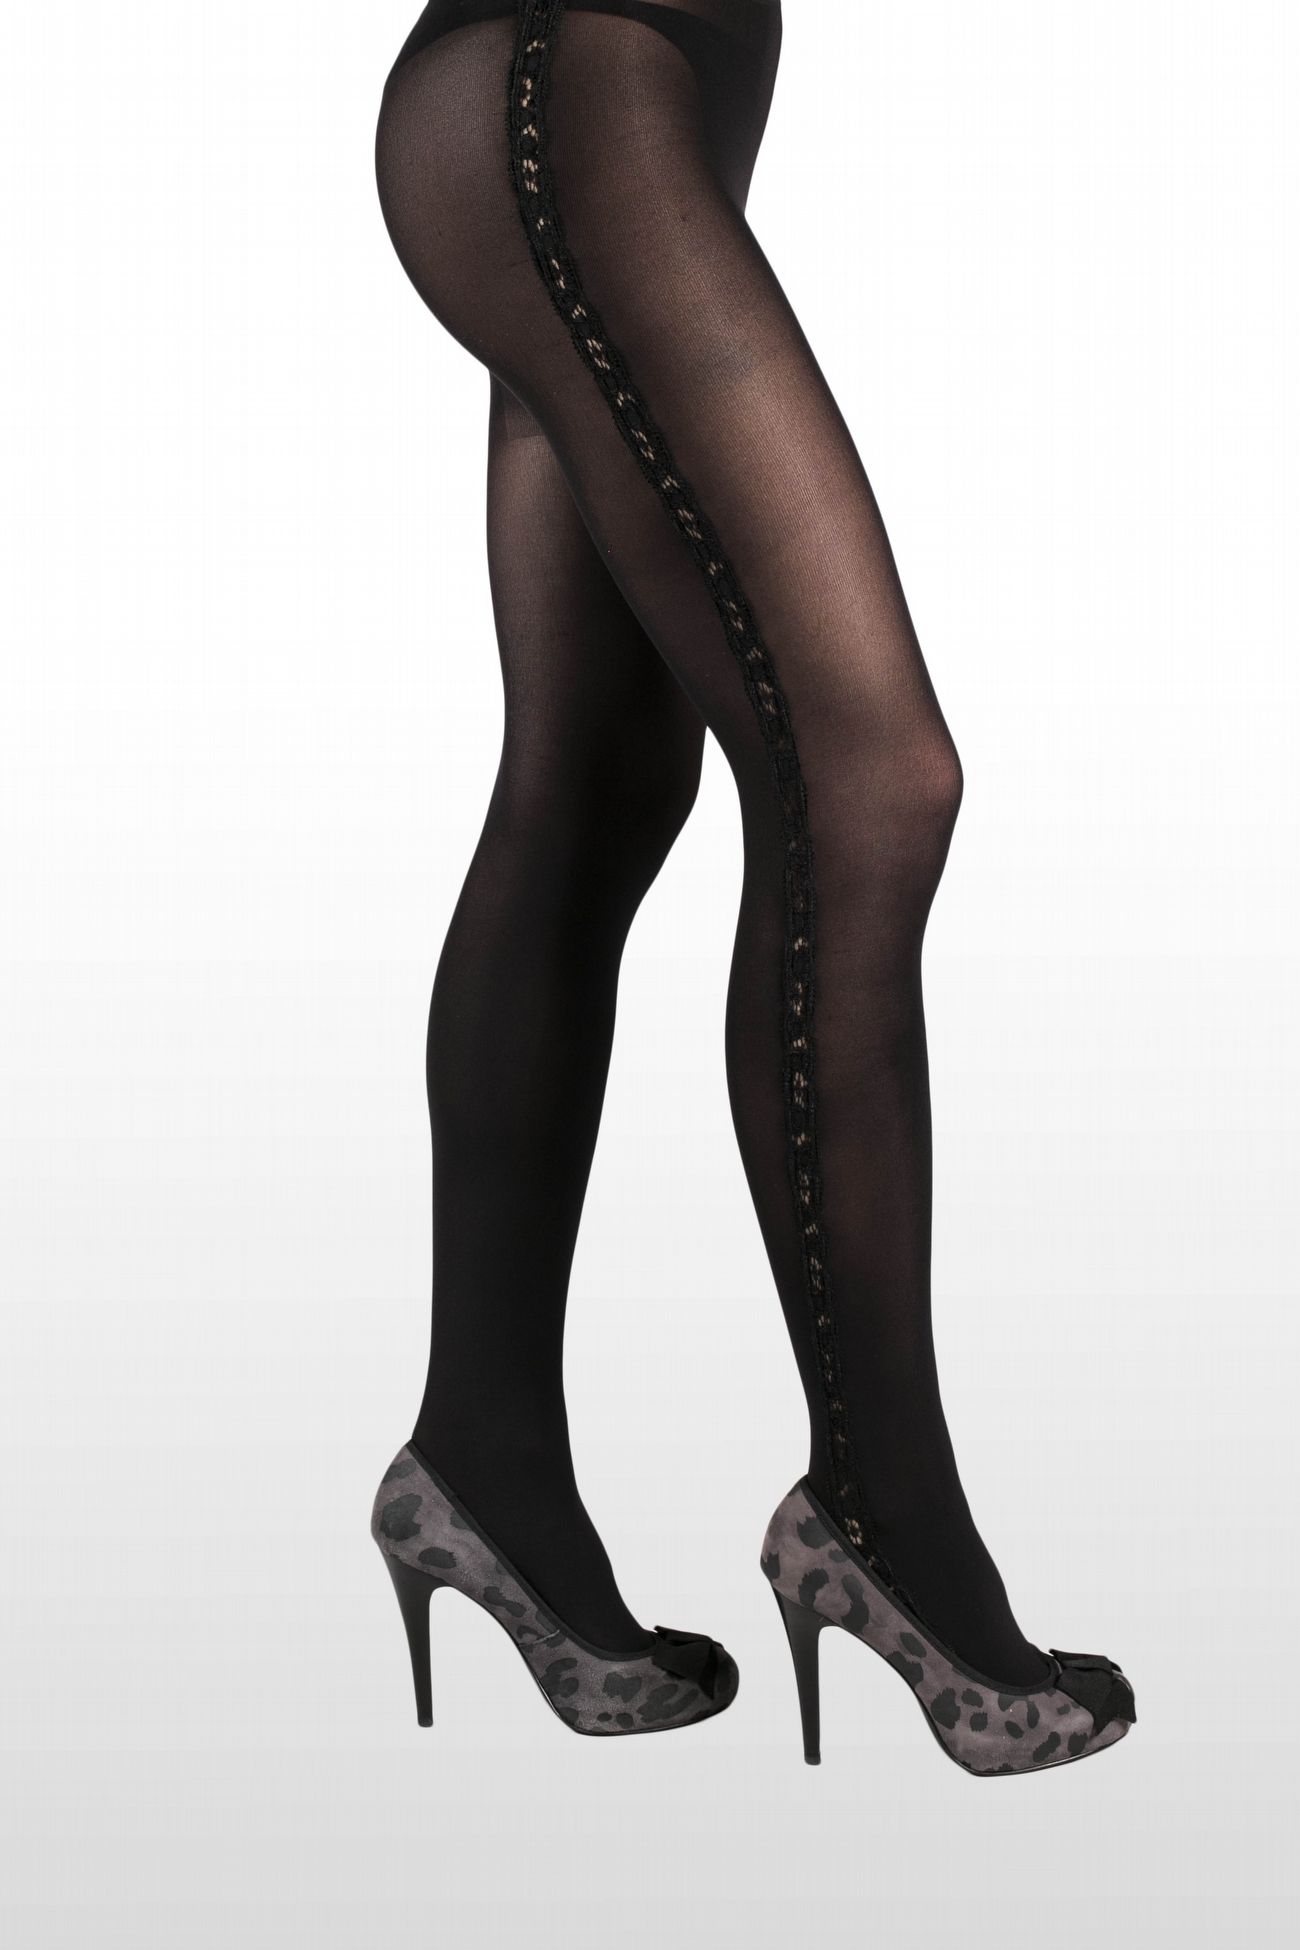 58599e06f6fe2 Buy online Tights LAVINIA made in Italy